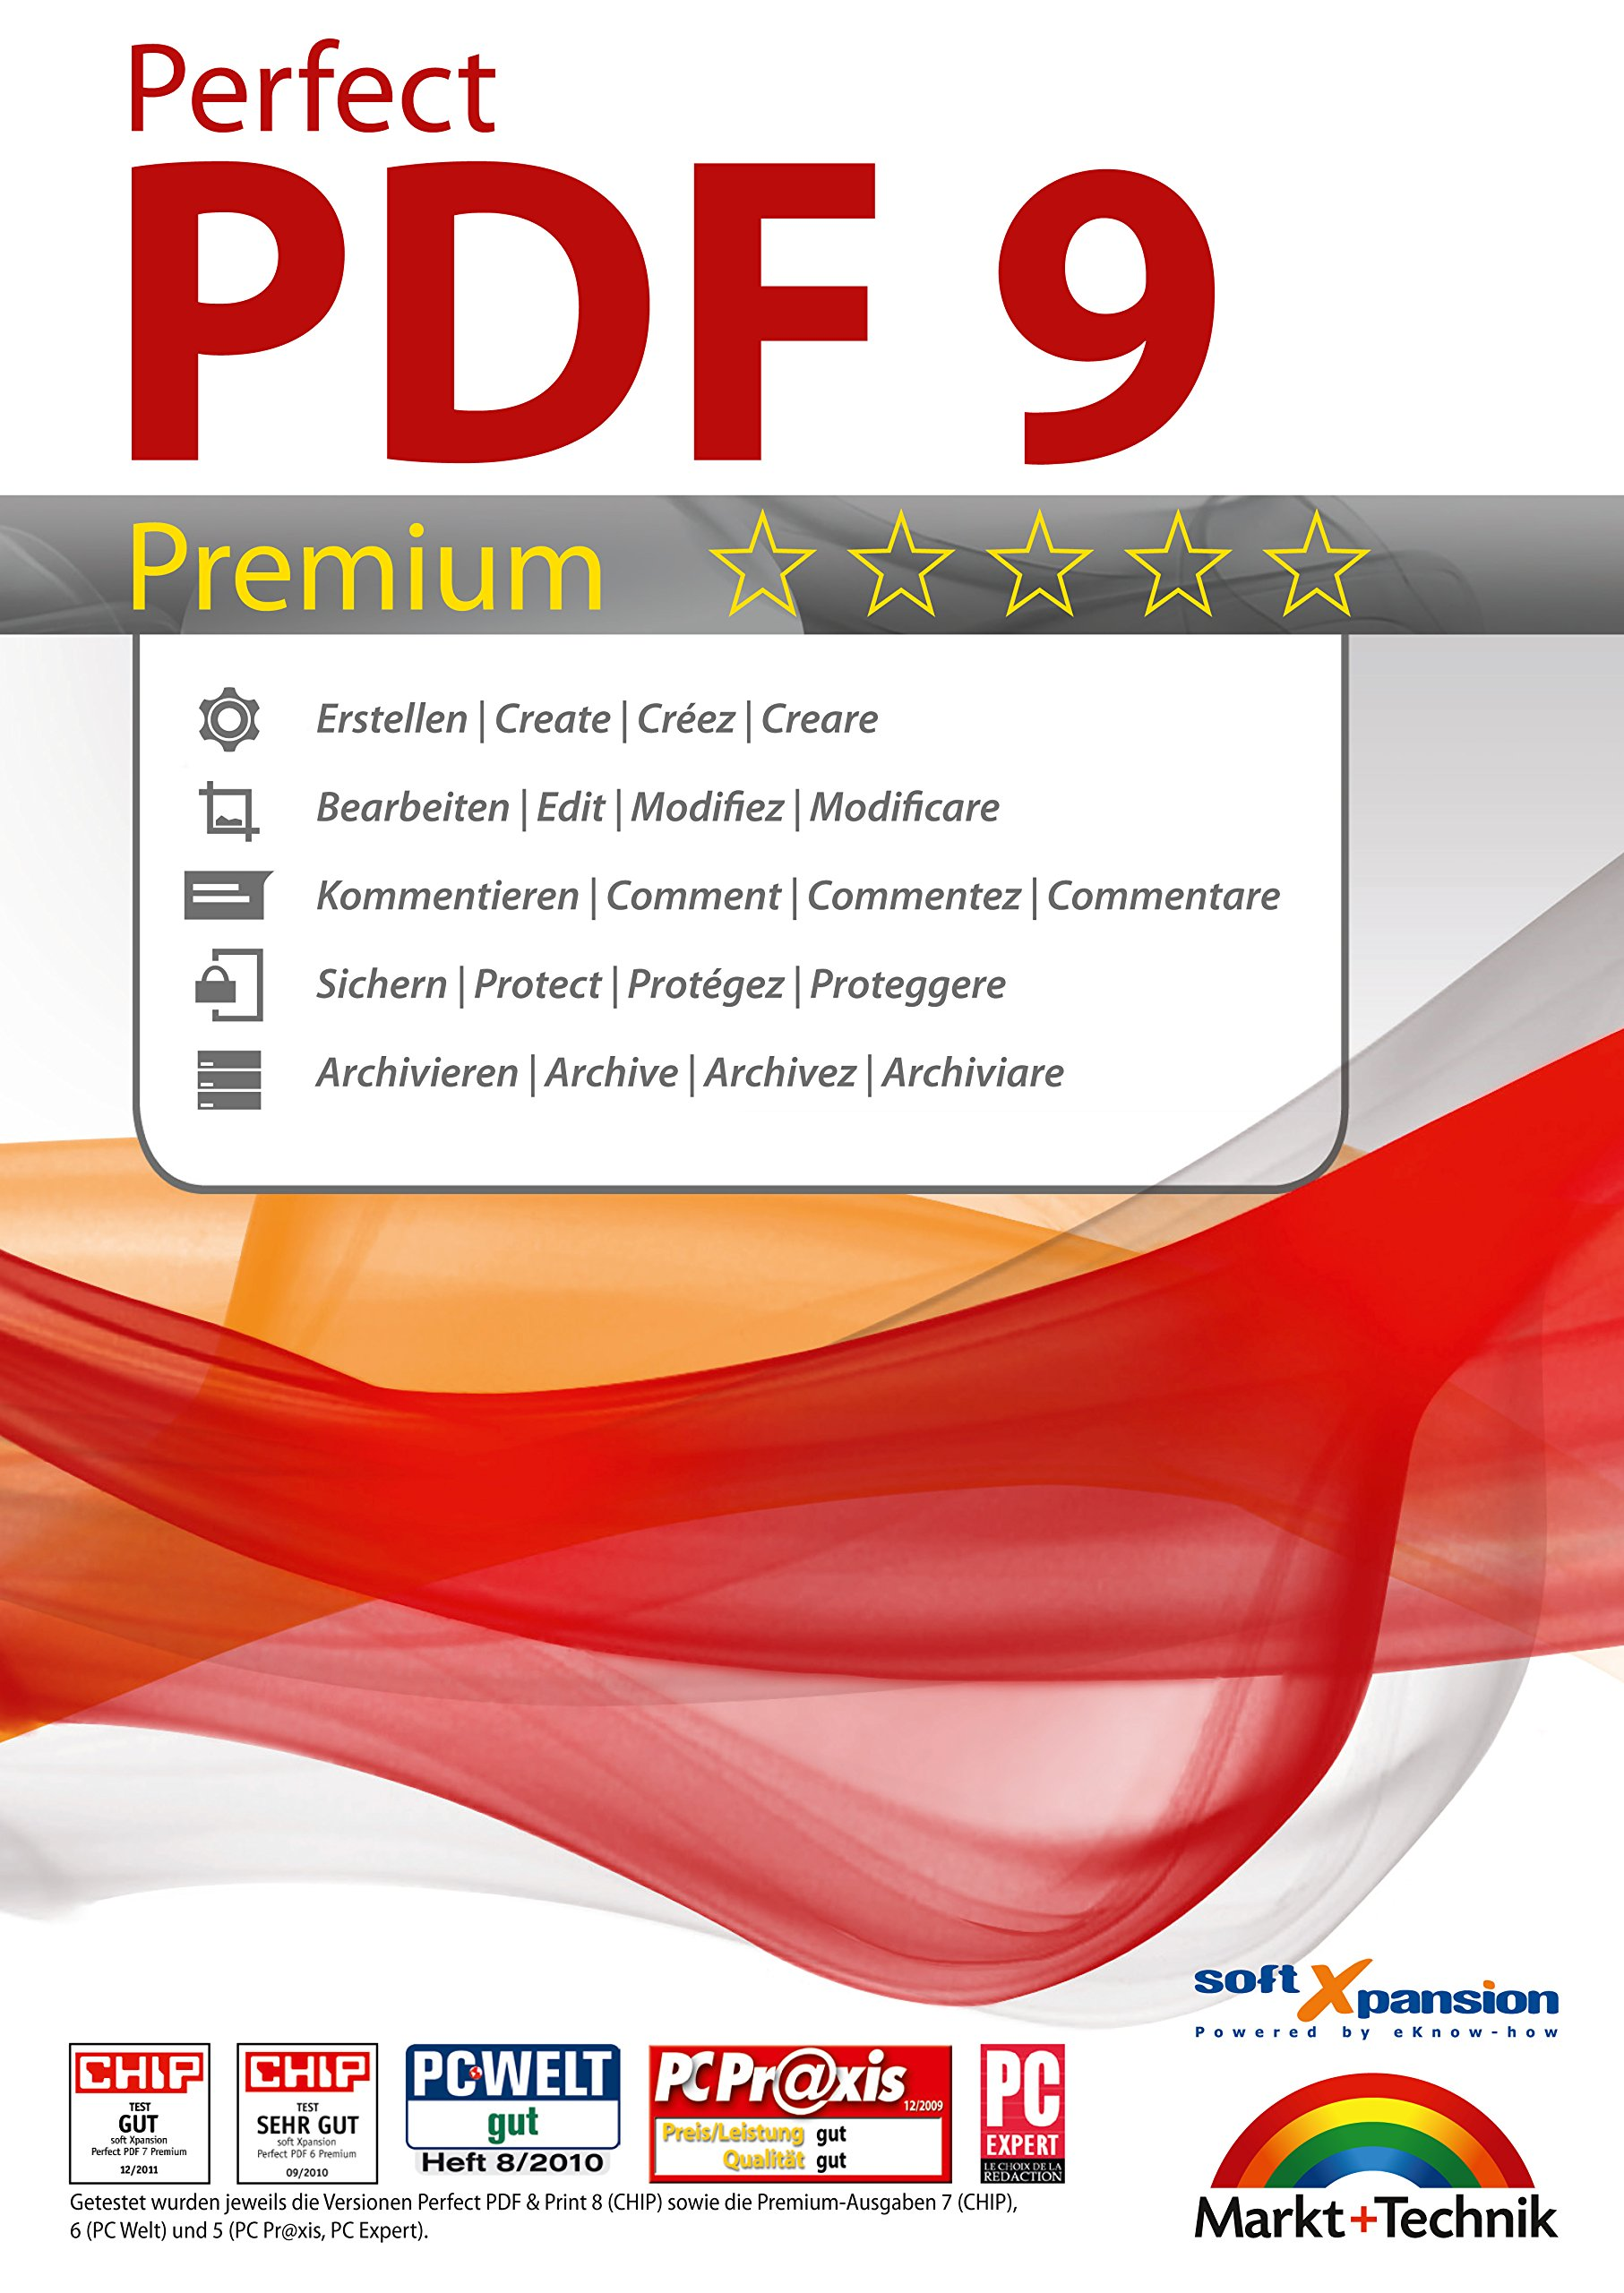 Perfect PDF 9 Premium - Create, Edit, Convert, Protect, Add Comments to, Insert Digital Signatures in PDFs with the OCR Module | 100% Compatible with Adobe Acrobat by Markt+Technik